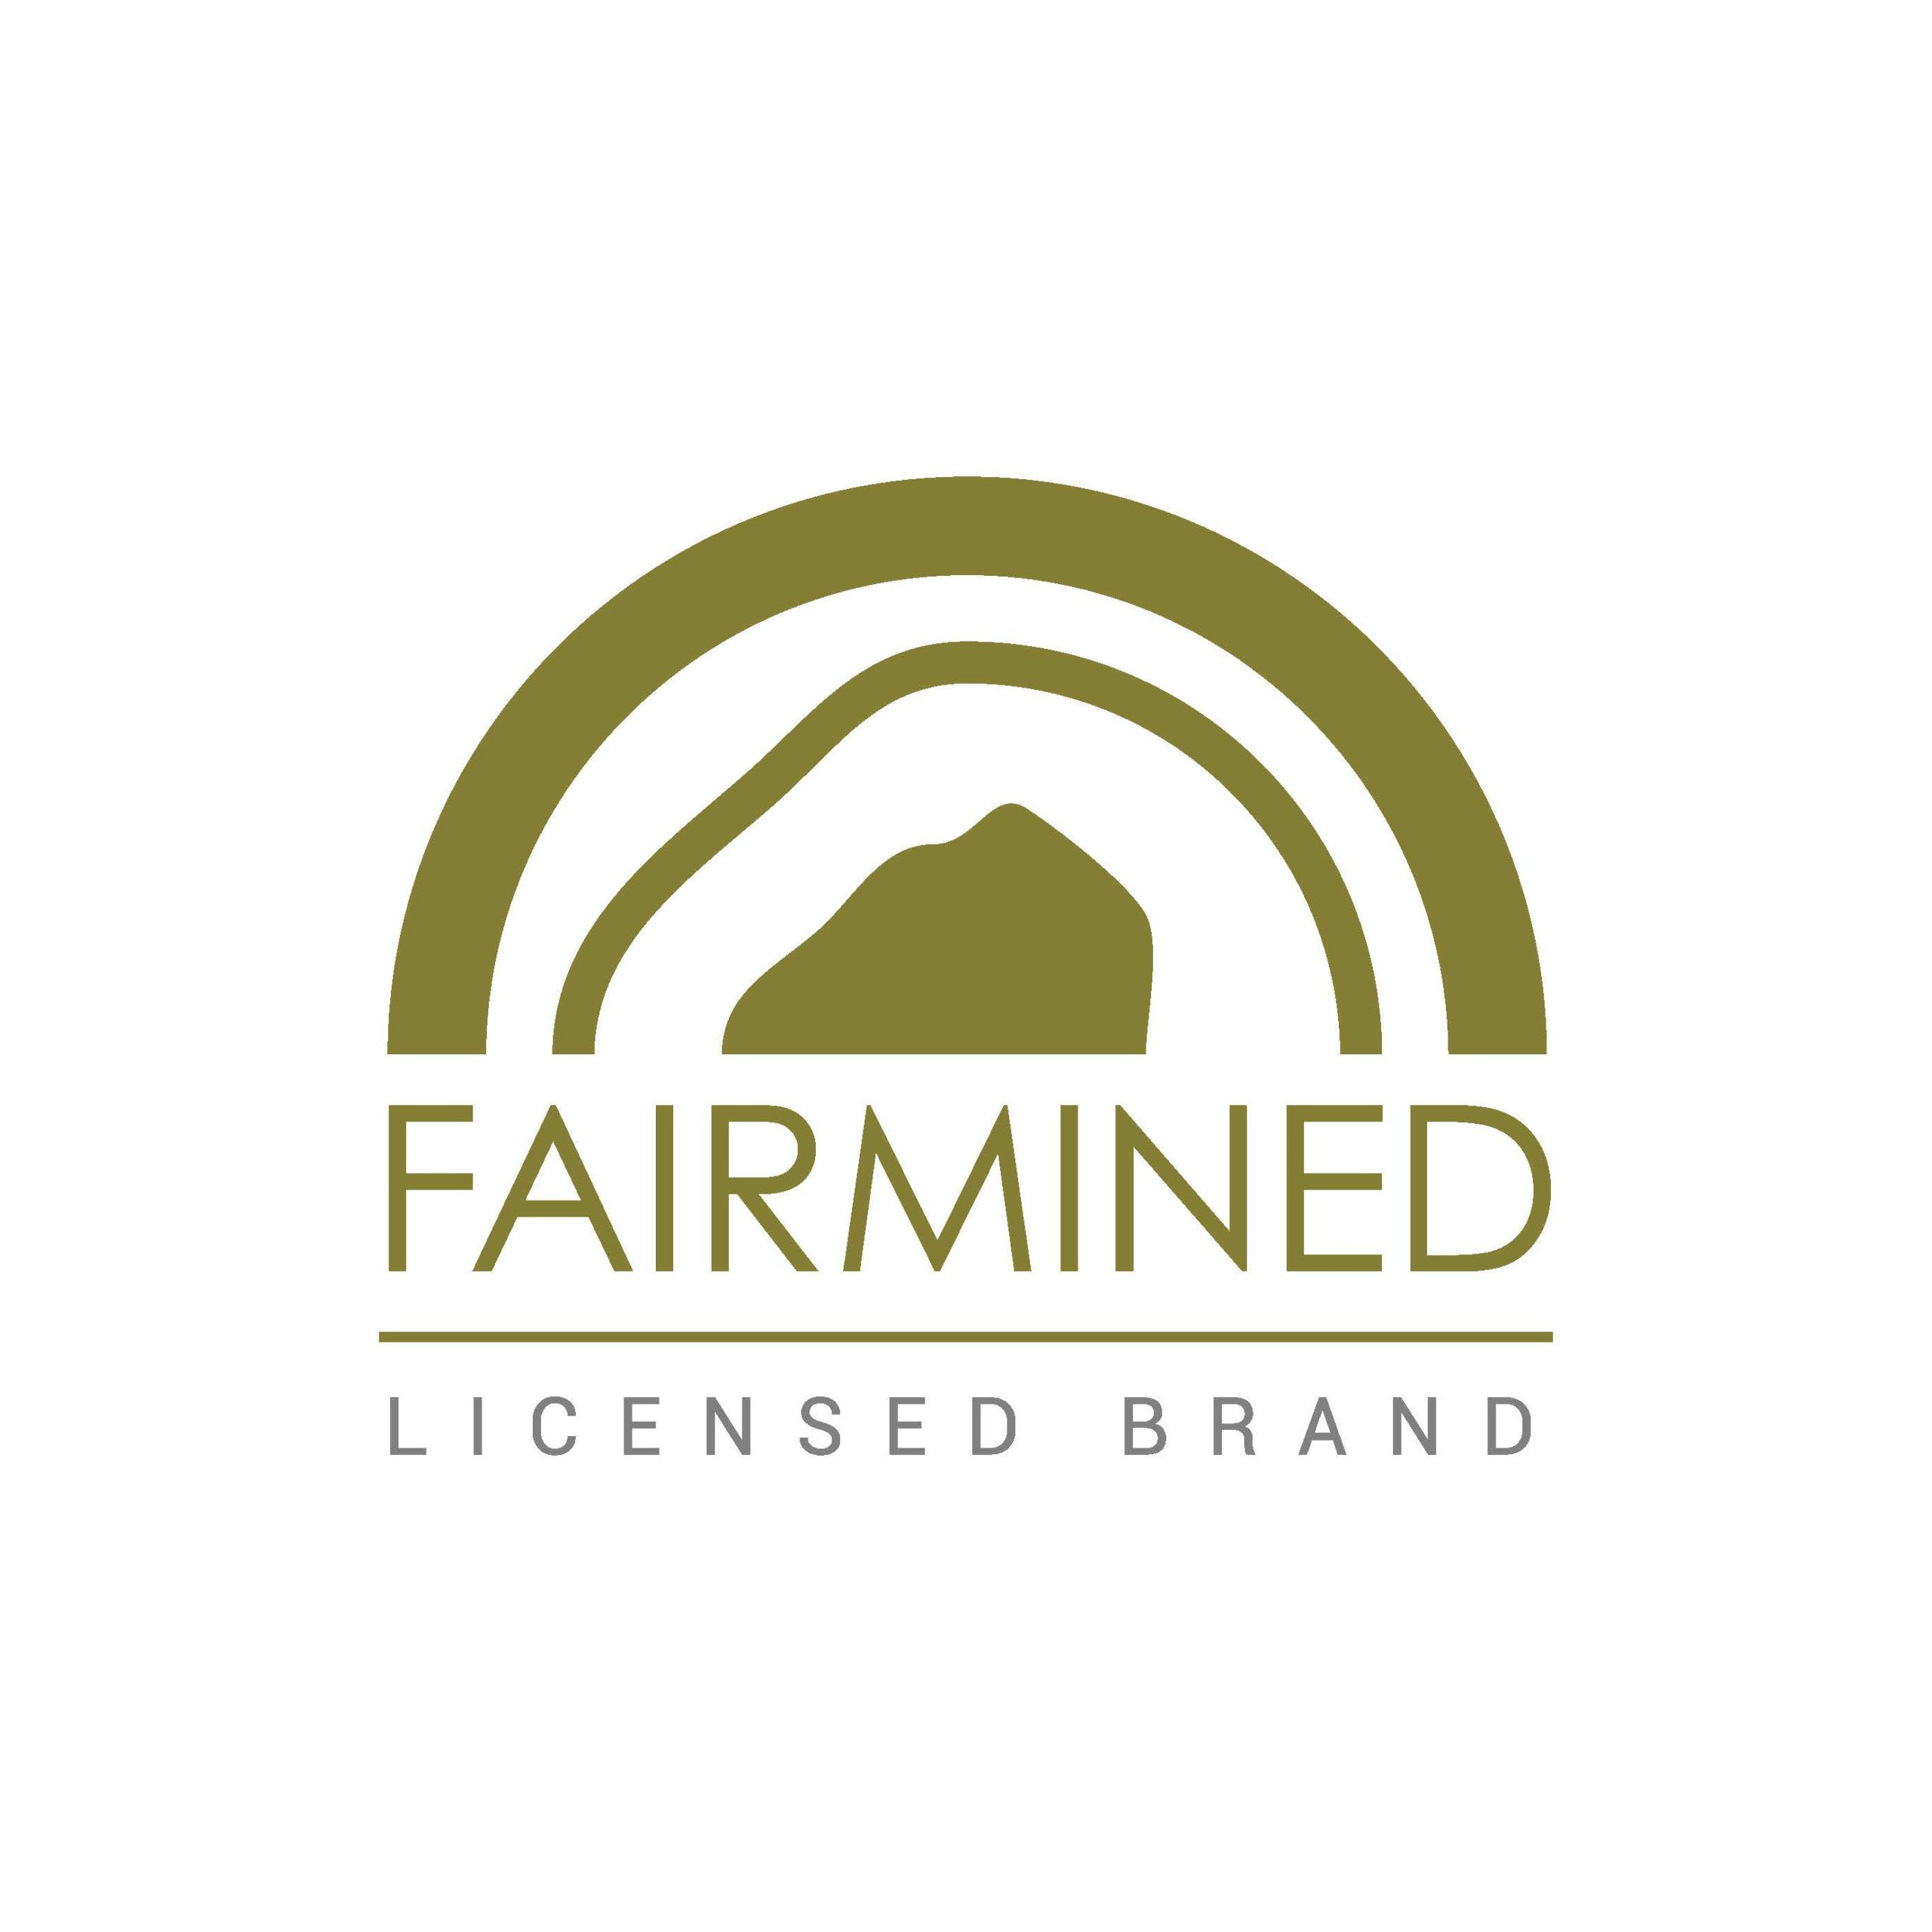 Fairmined licensed brand logo